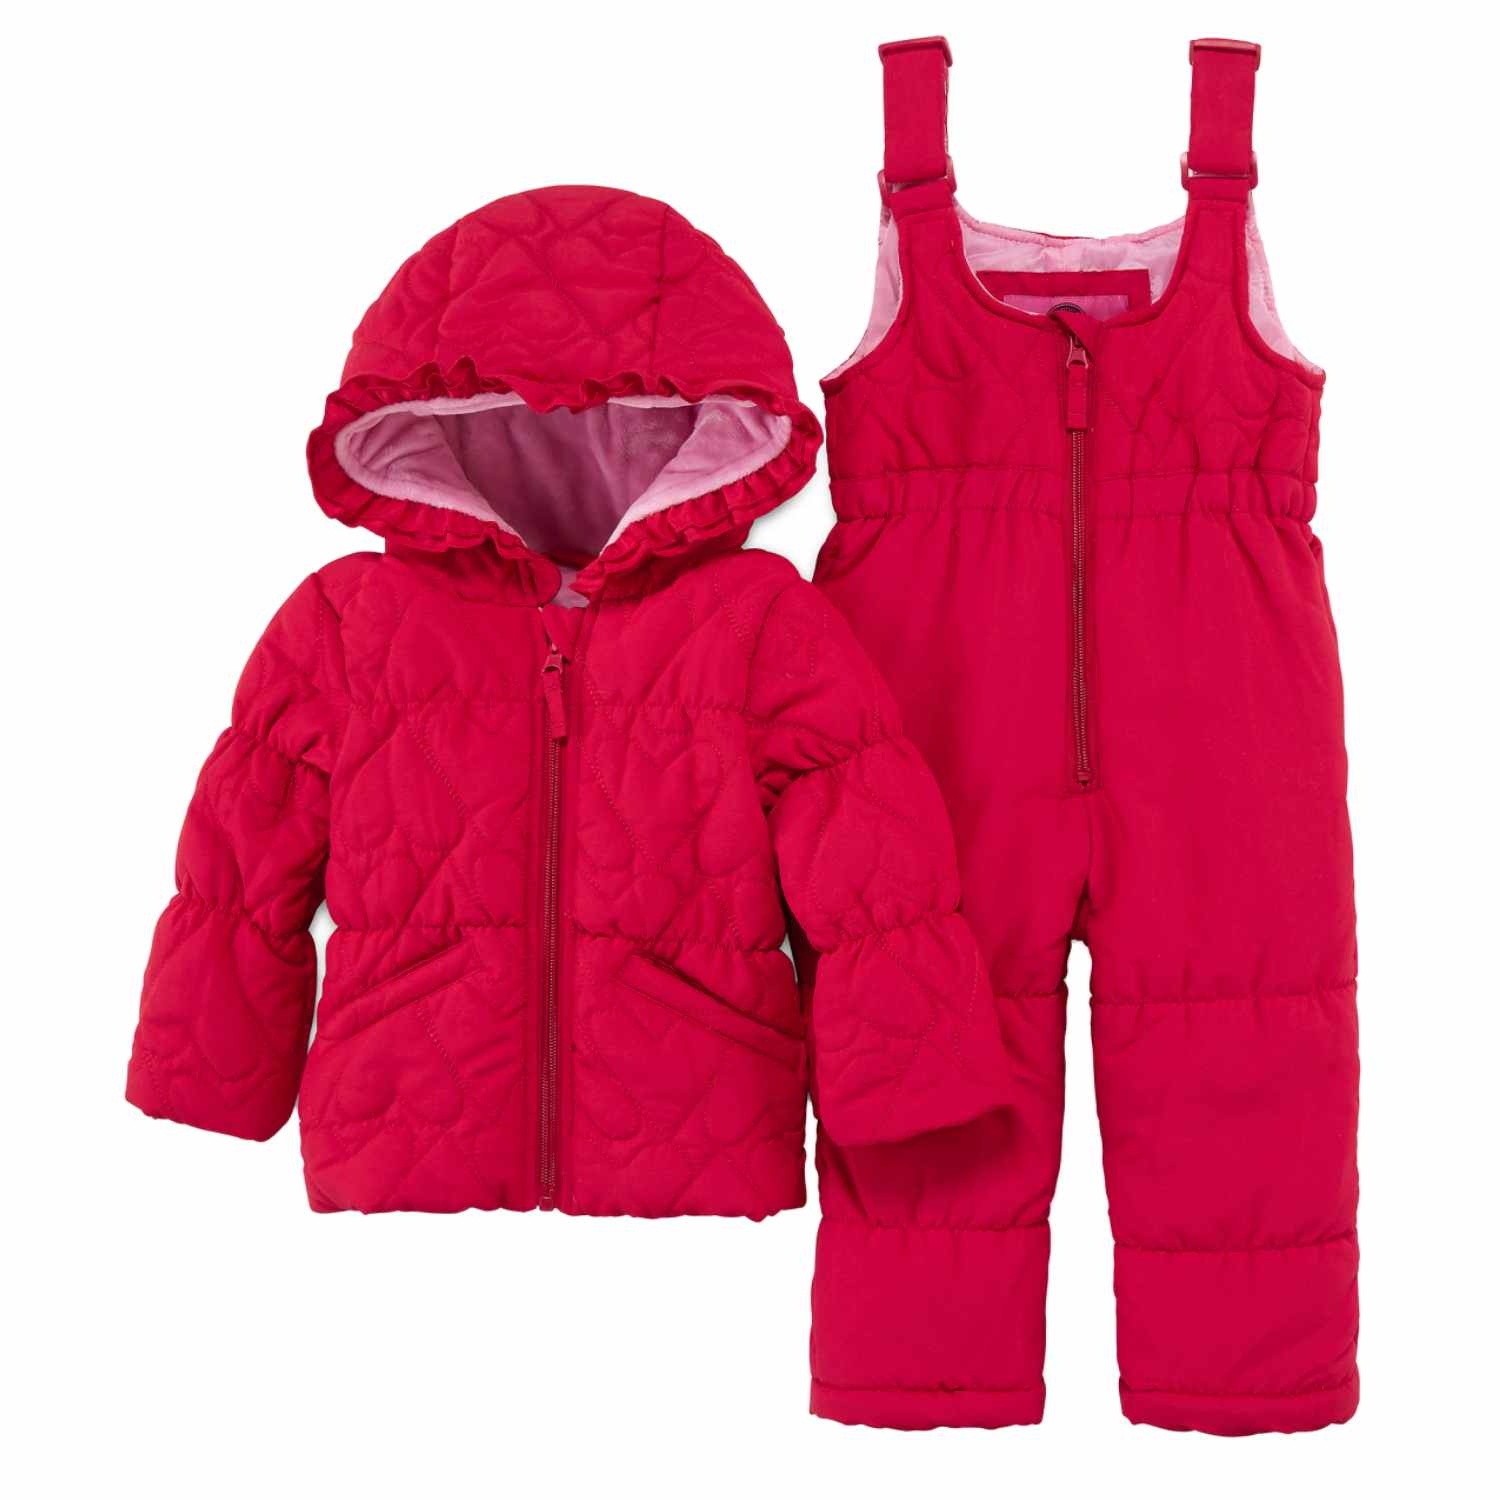 Weatherproof Infant Girls Red Heart 2 PC Snow Bibs & Coat Set Snowsuit